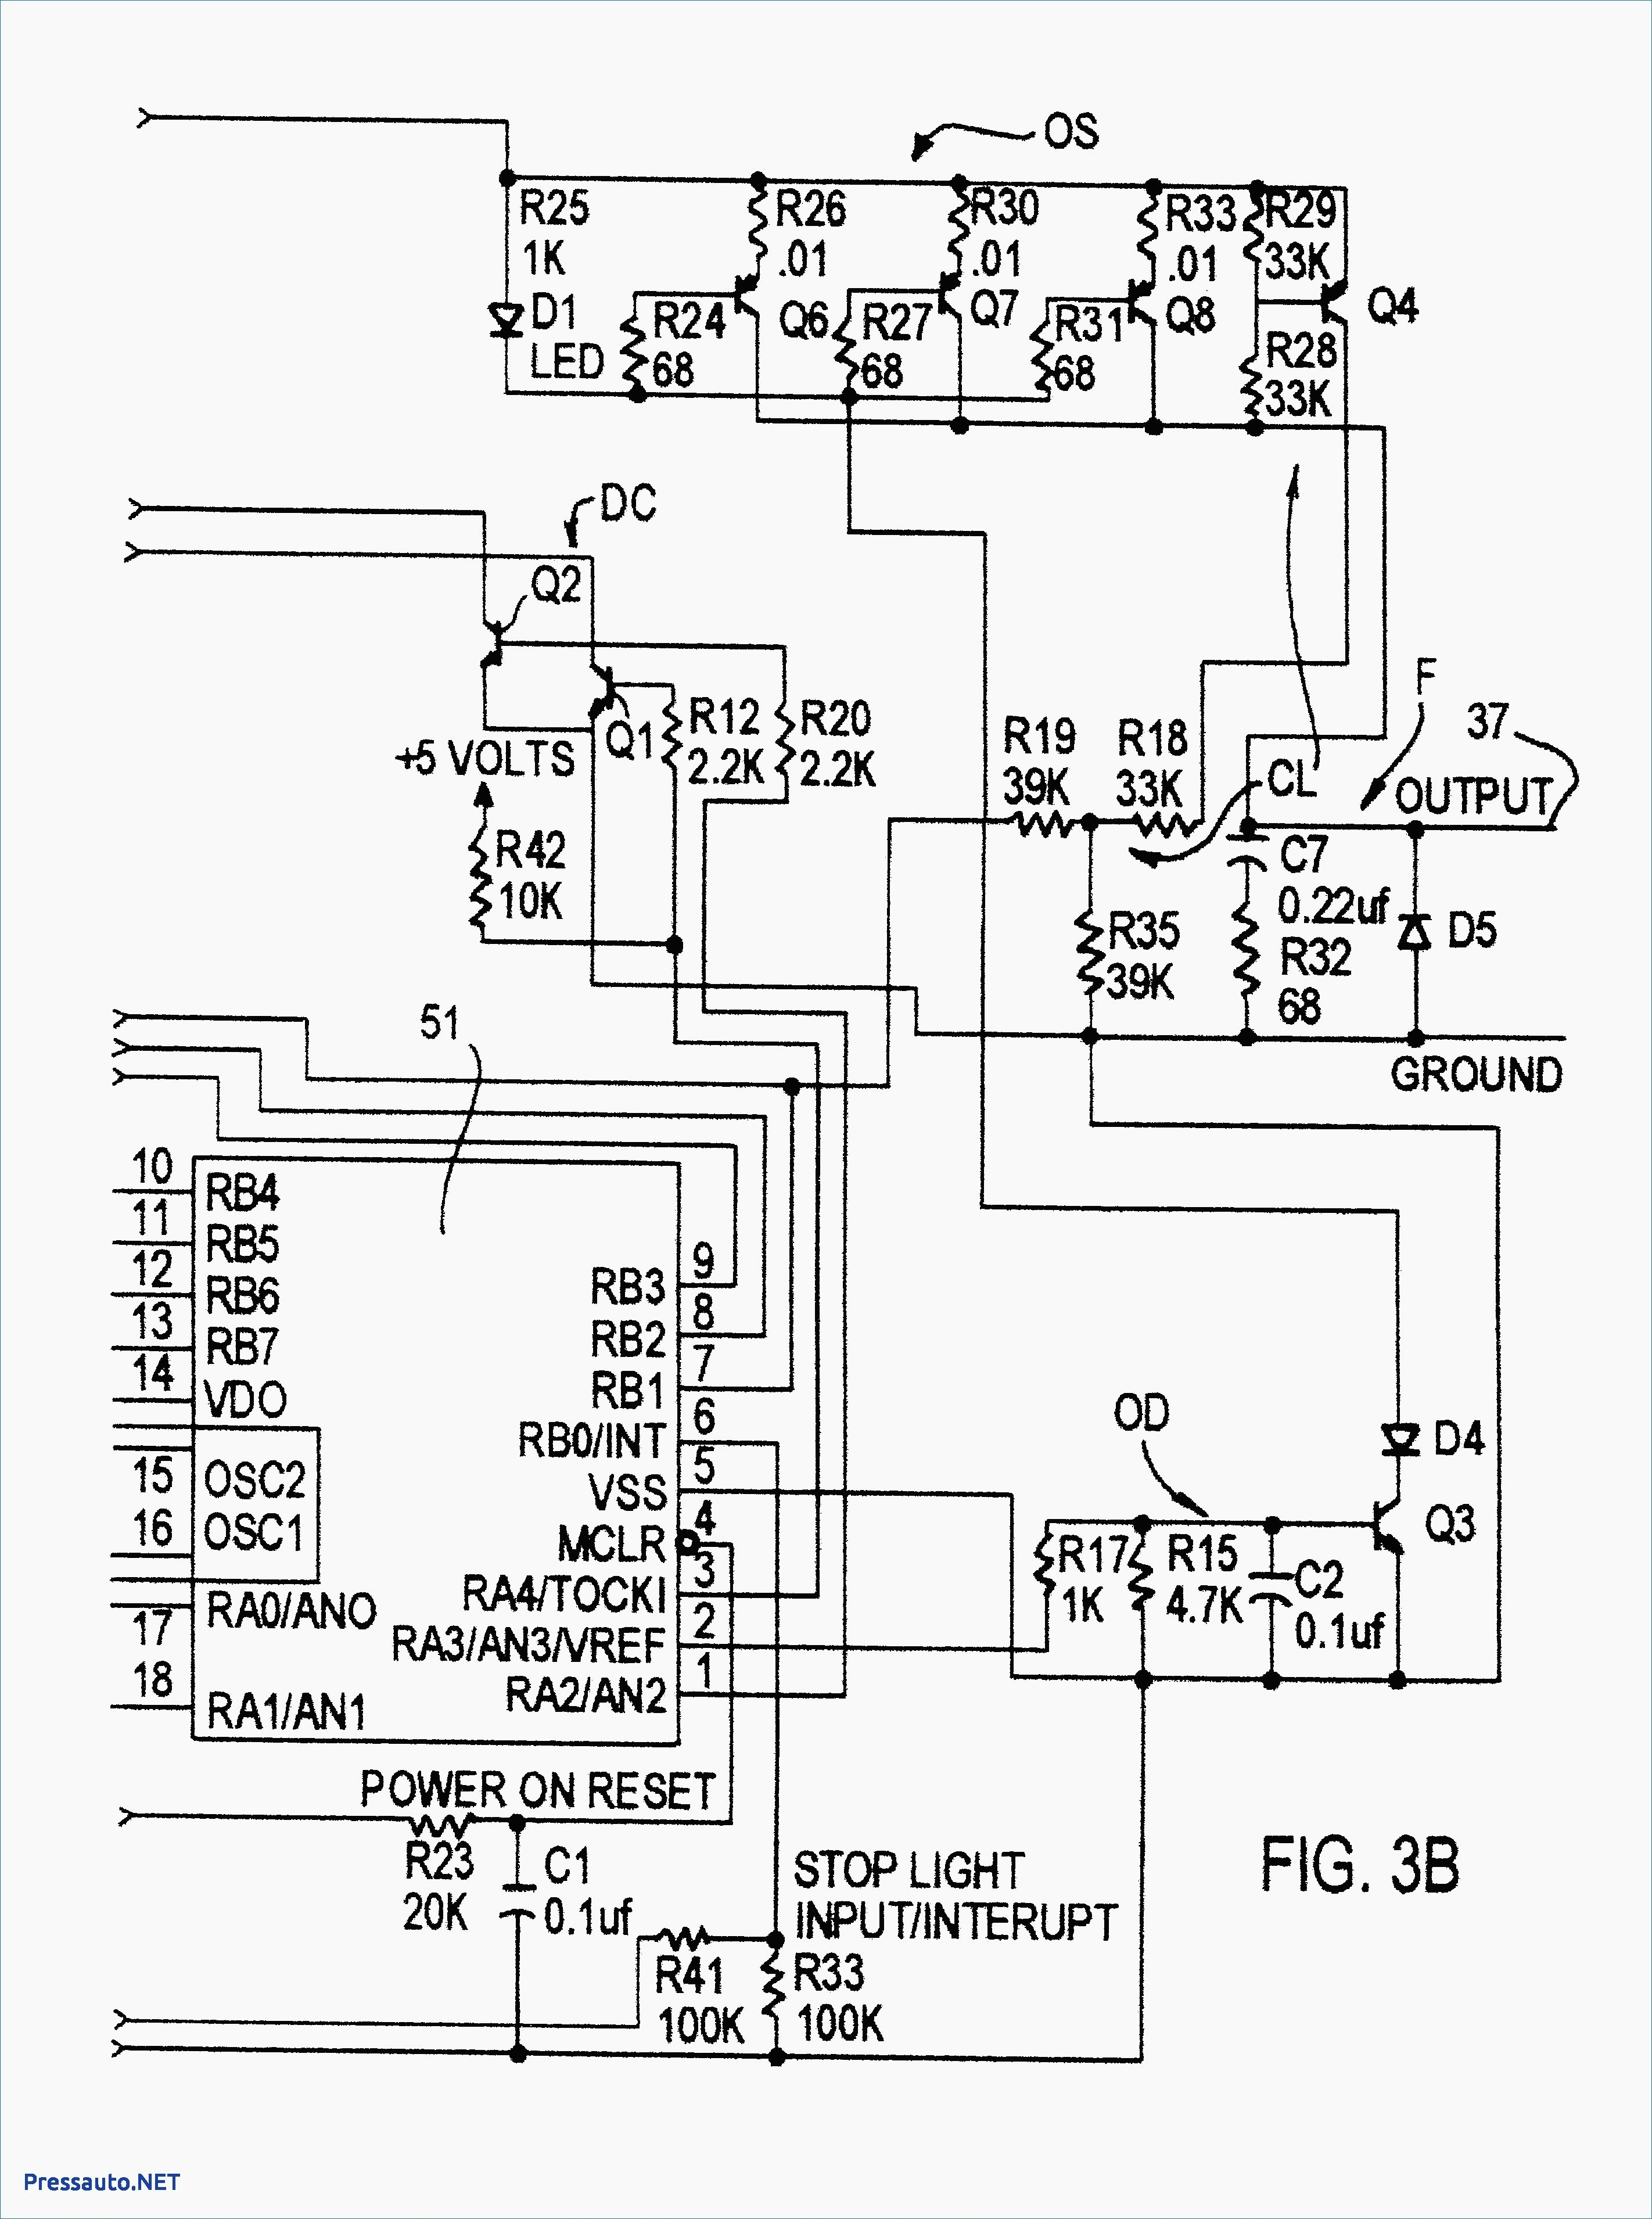 John Deere D130 Wiring Diagram Jd 300 Wiring Diagram Experts Wiring Diagram • Of John Deere D130 Wiring Diagram